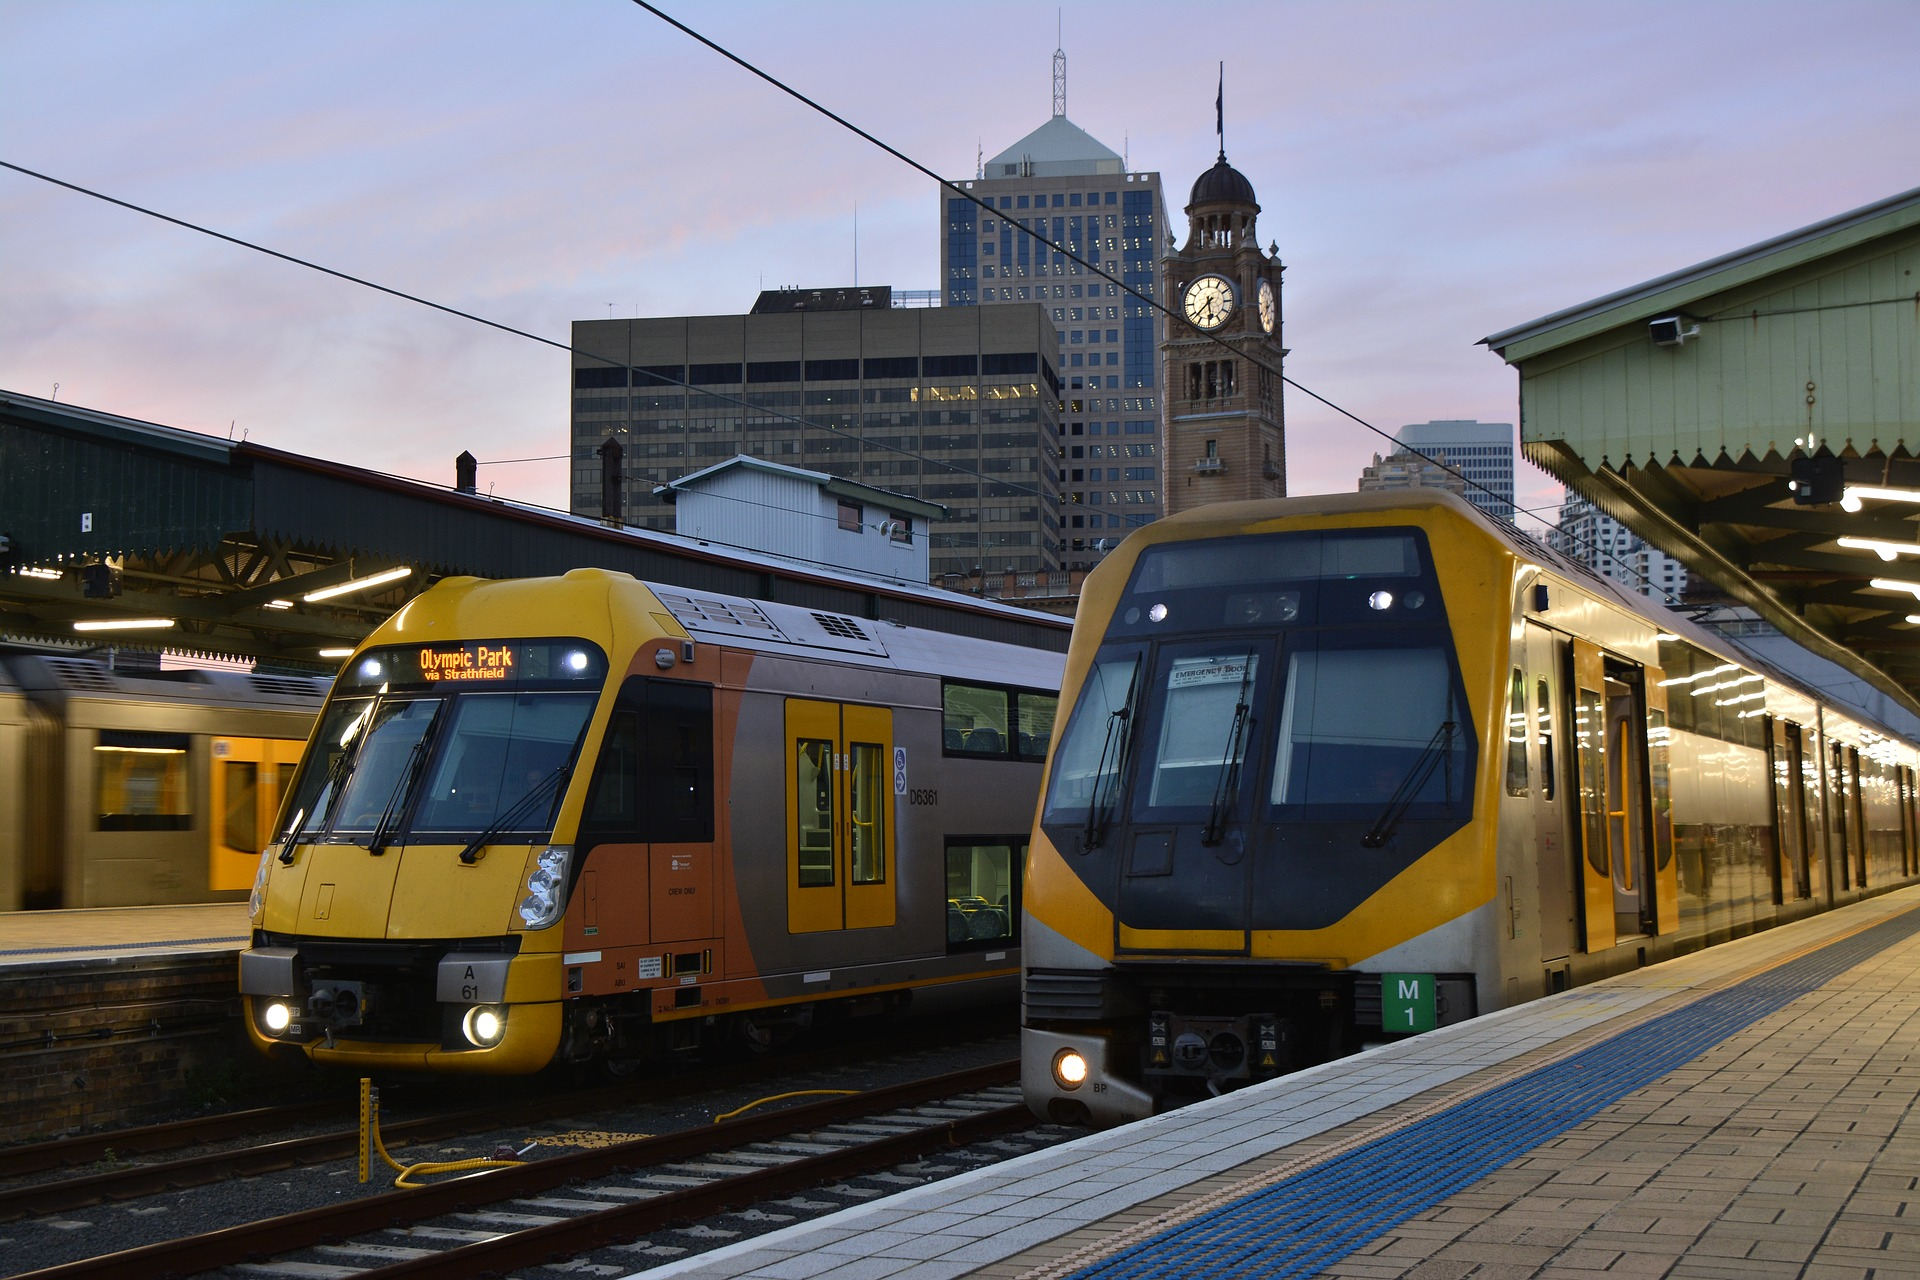 Trains in Sydney, Australia